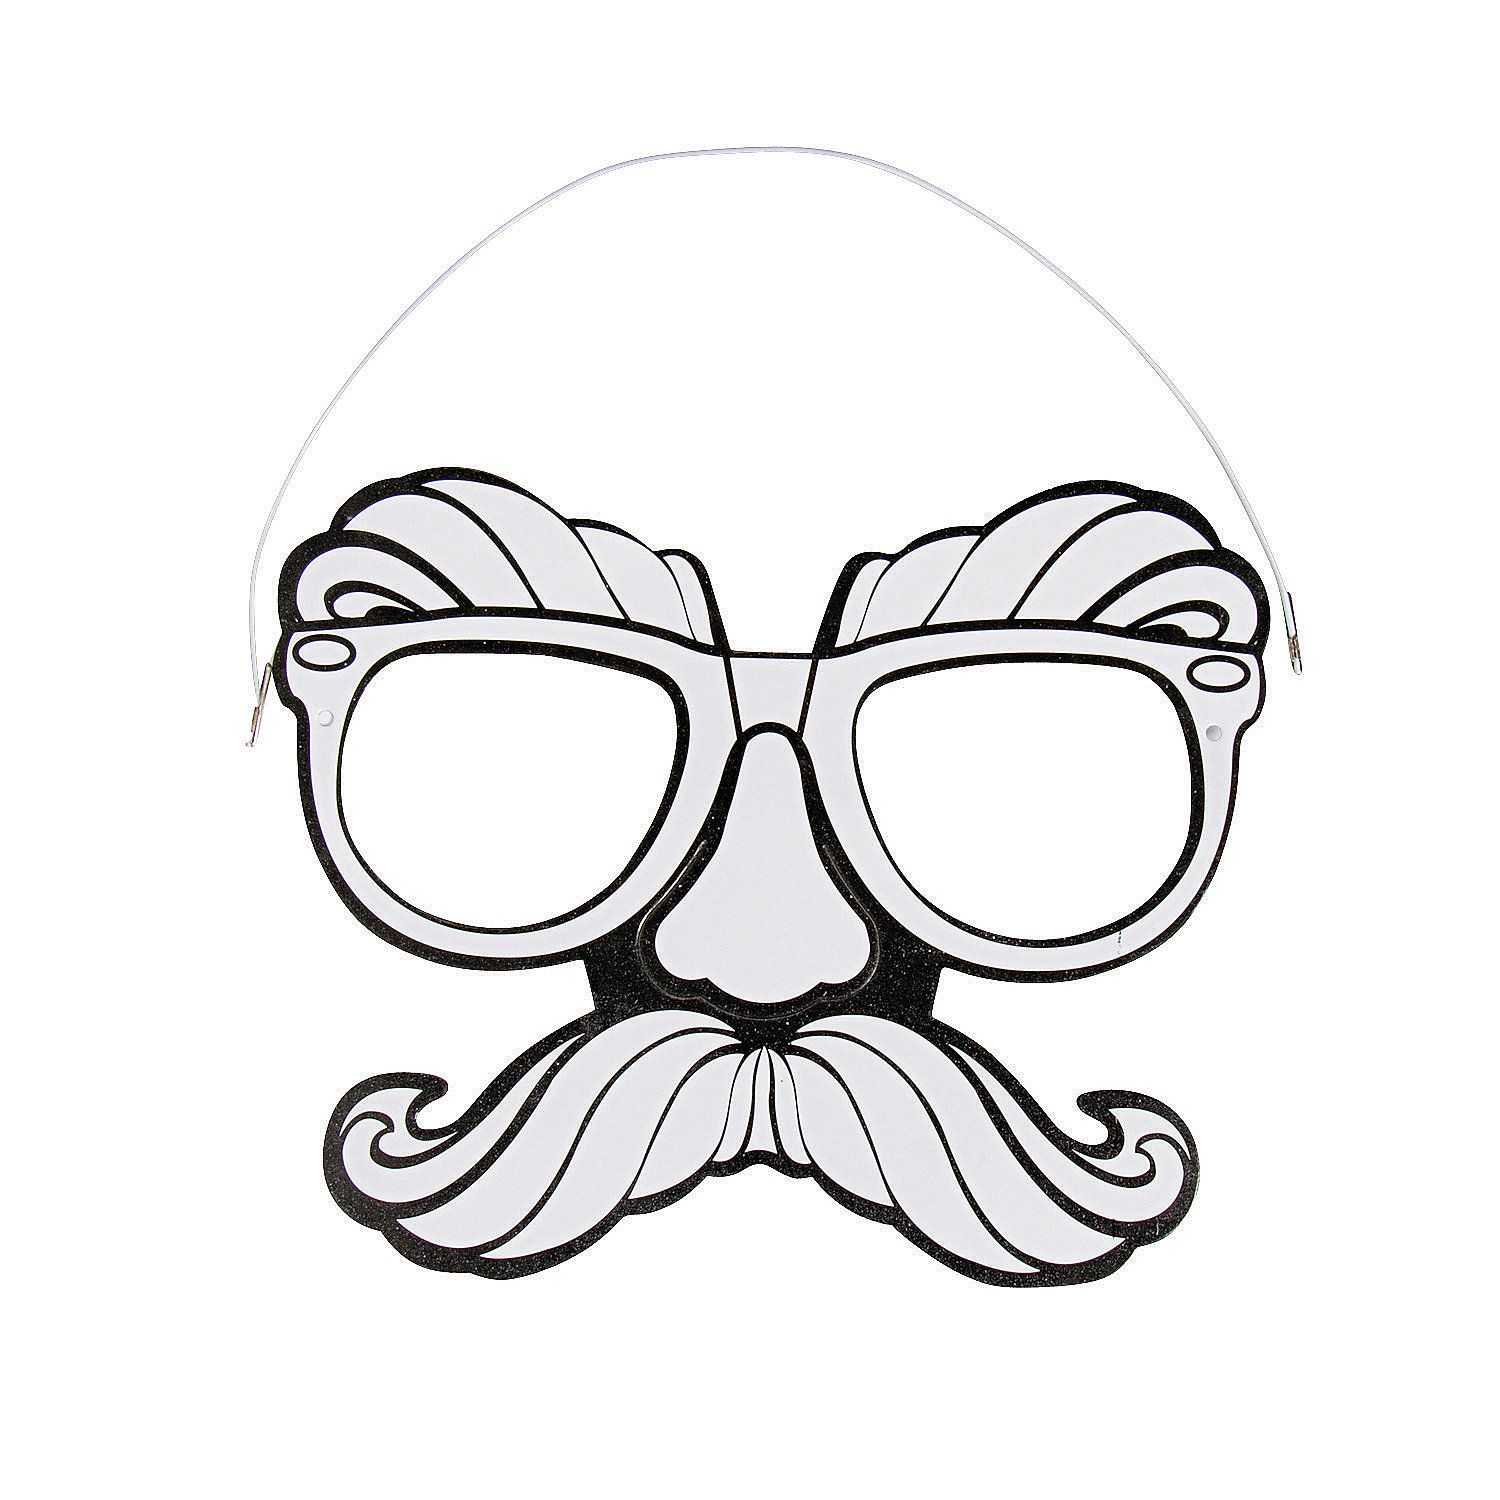 7 Great Marvelous Moustaches Costume Fancy Dress Halloween Undercover Disguise